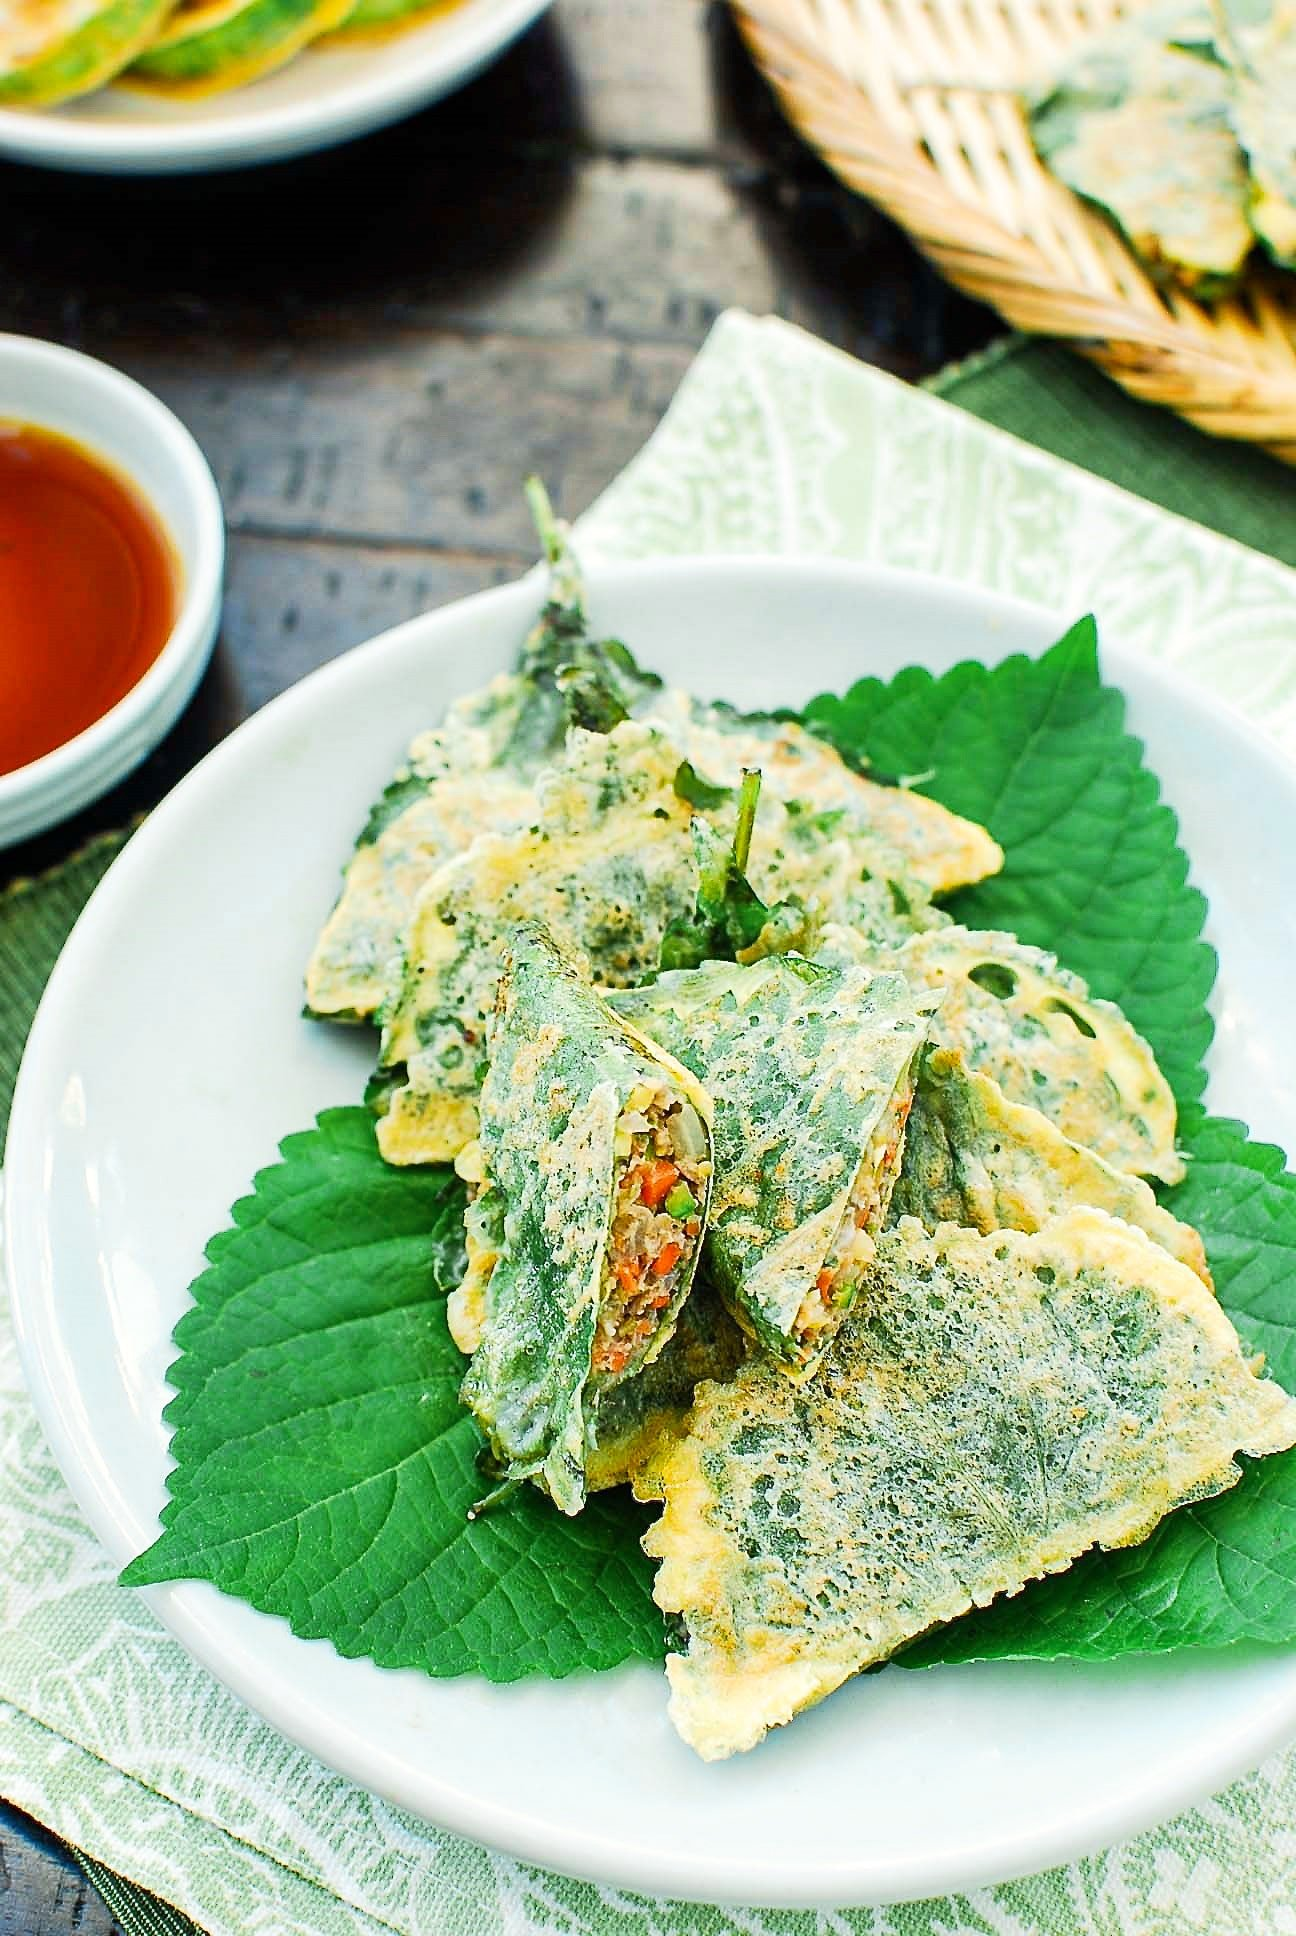 DSC 0848 3 - Kkaennip Jeon (Pan-fried Stuffed Perilla Leaves)